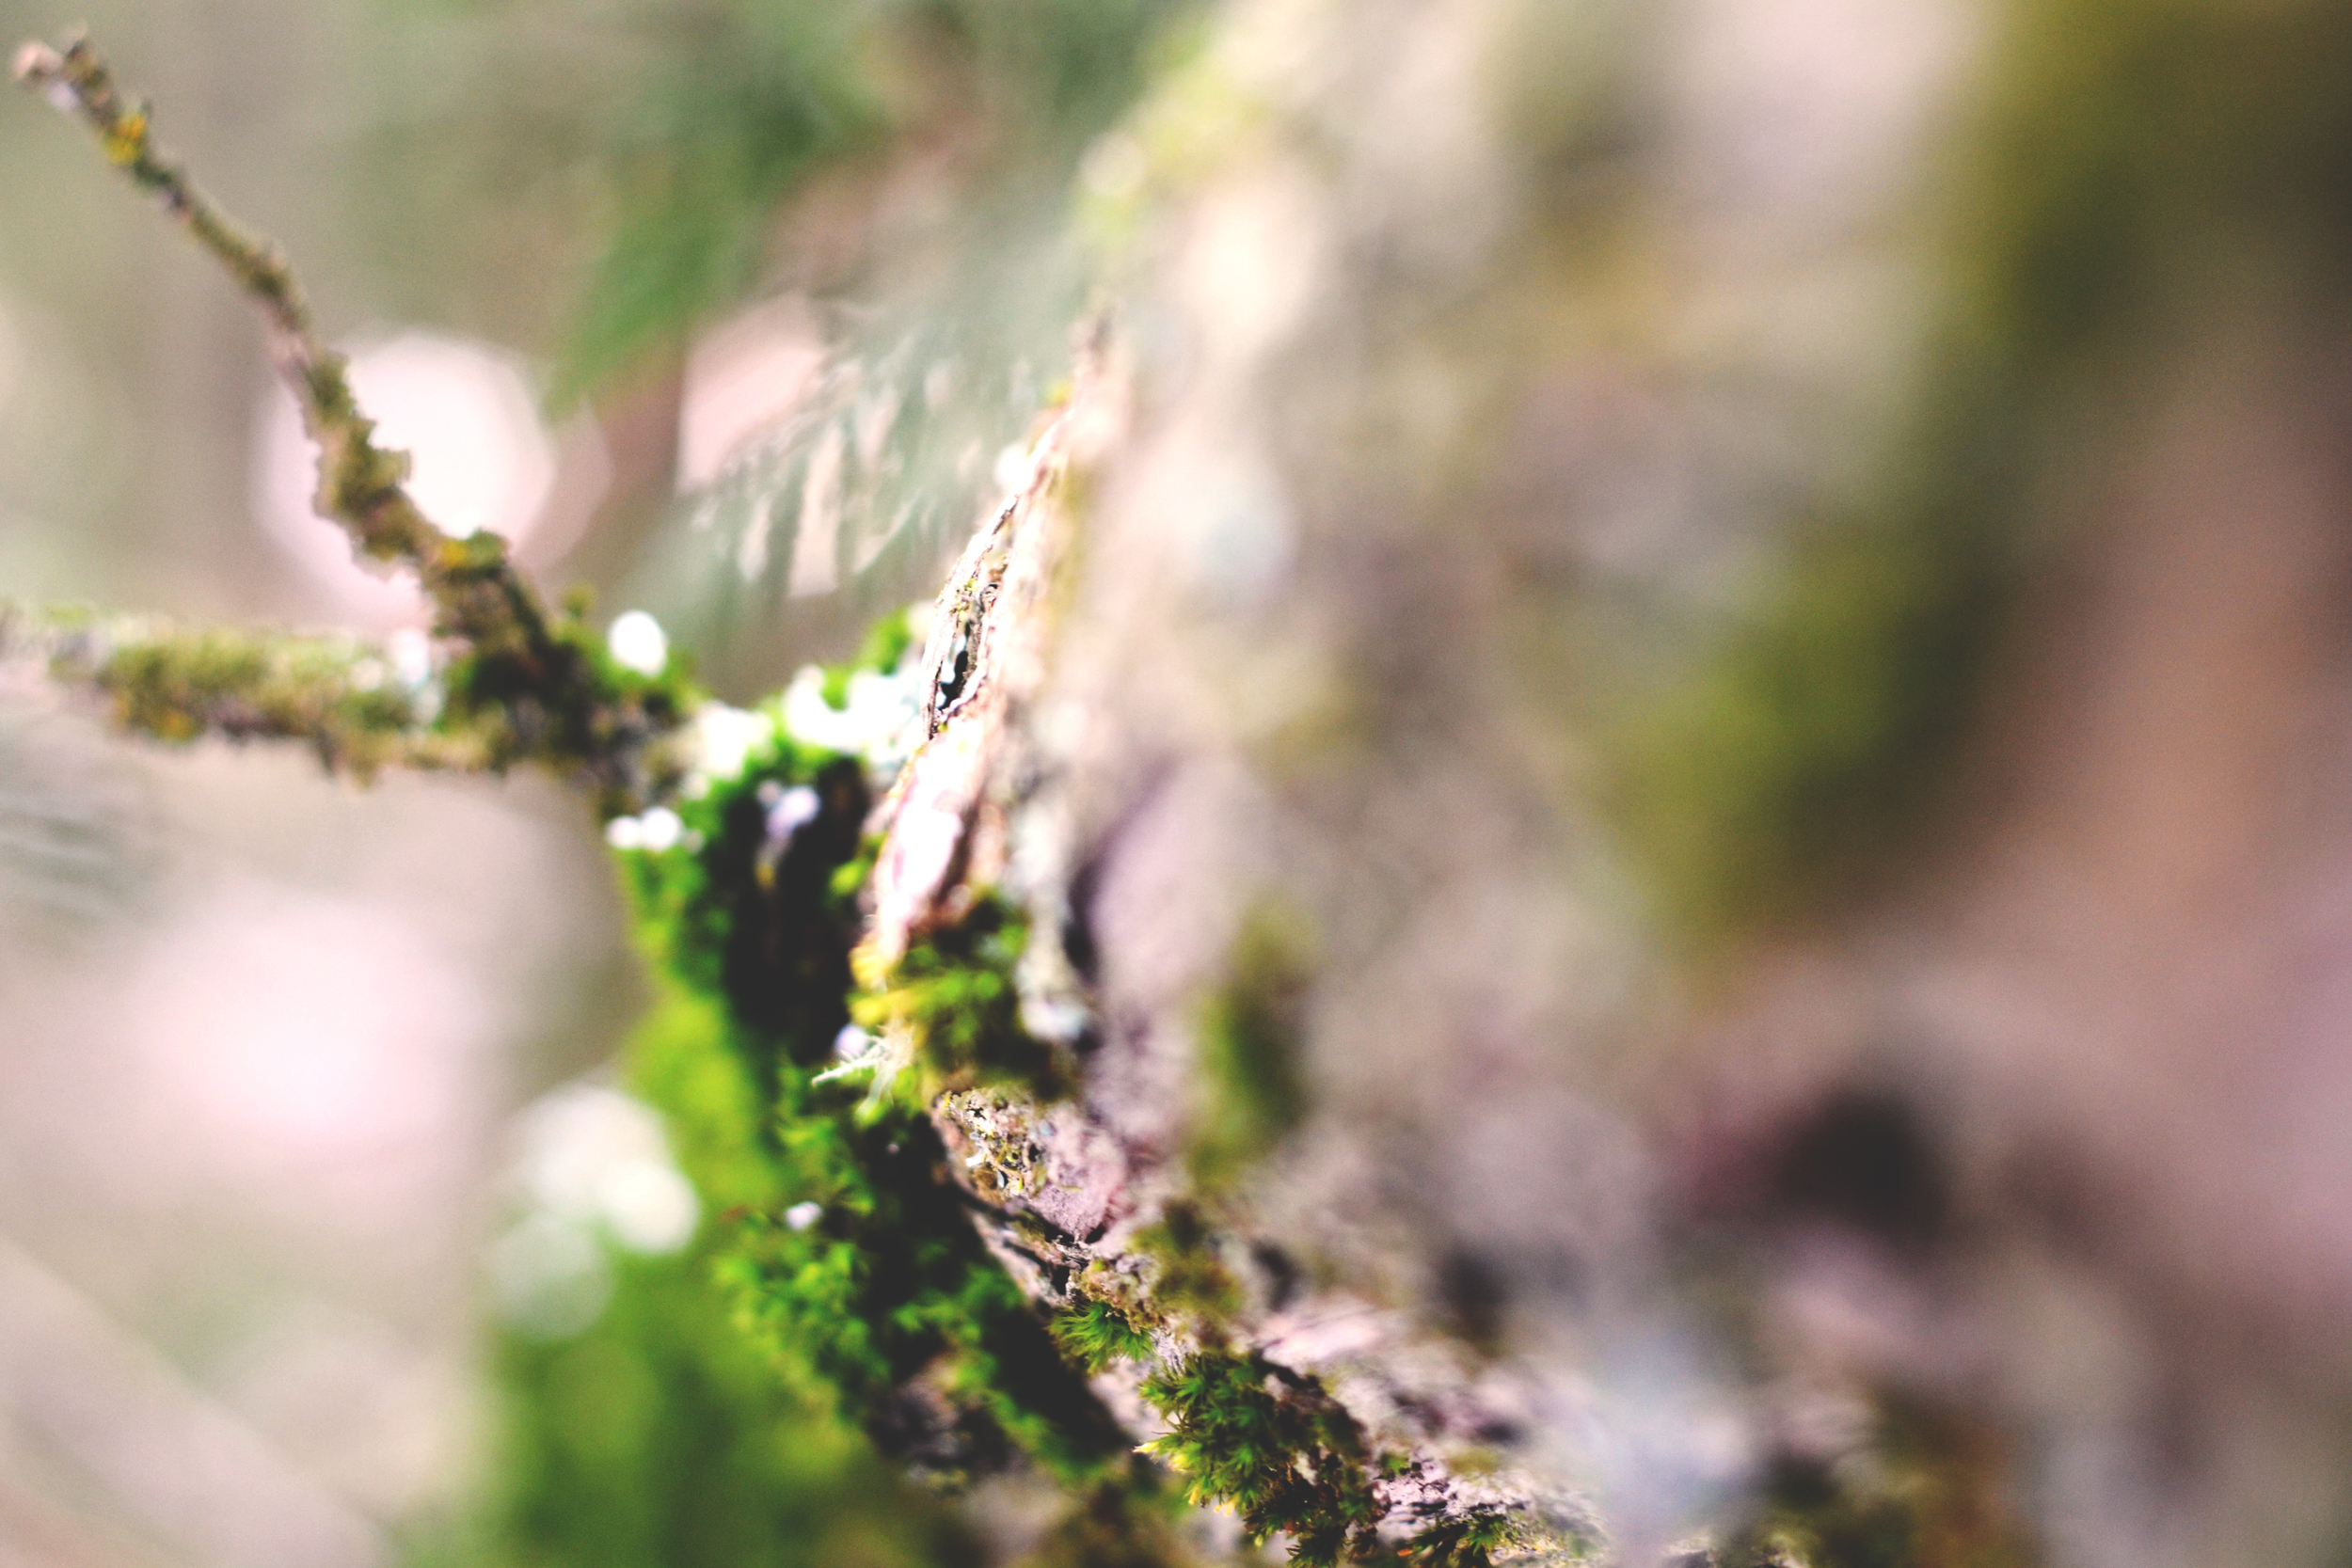 Focus | Moscow Mountain, Moscow, IDAHO | All Rights Reserved Heather Woolery 2016